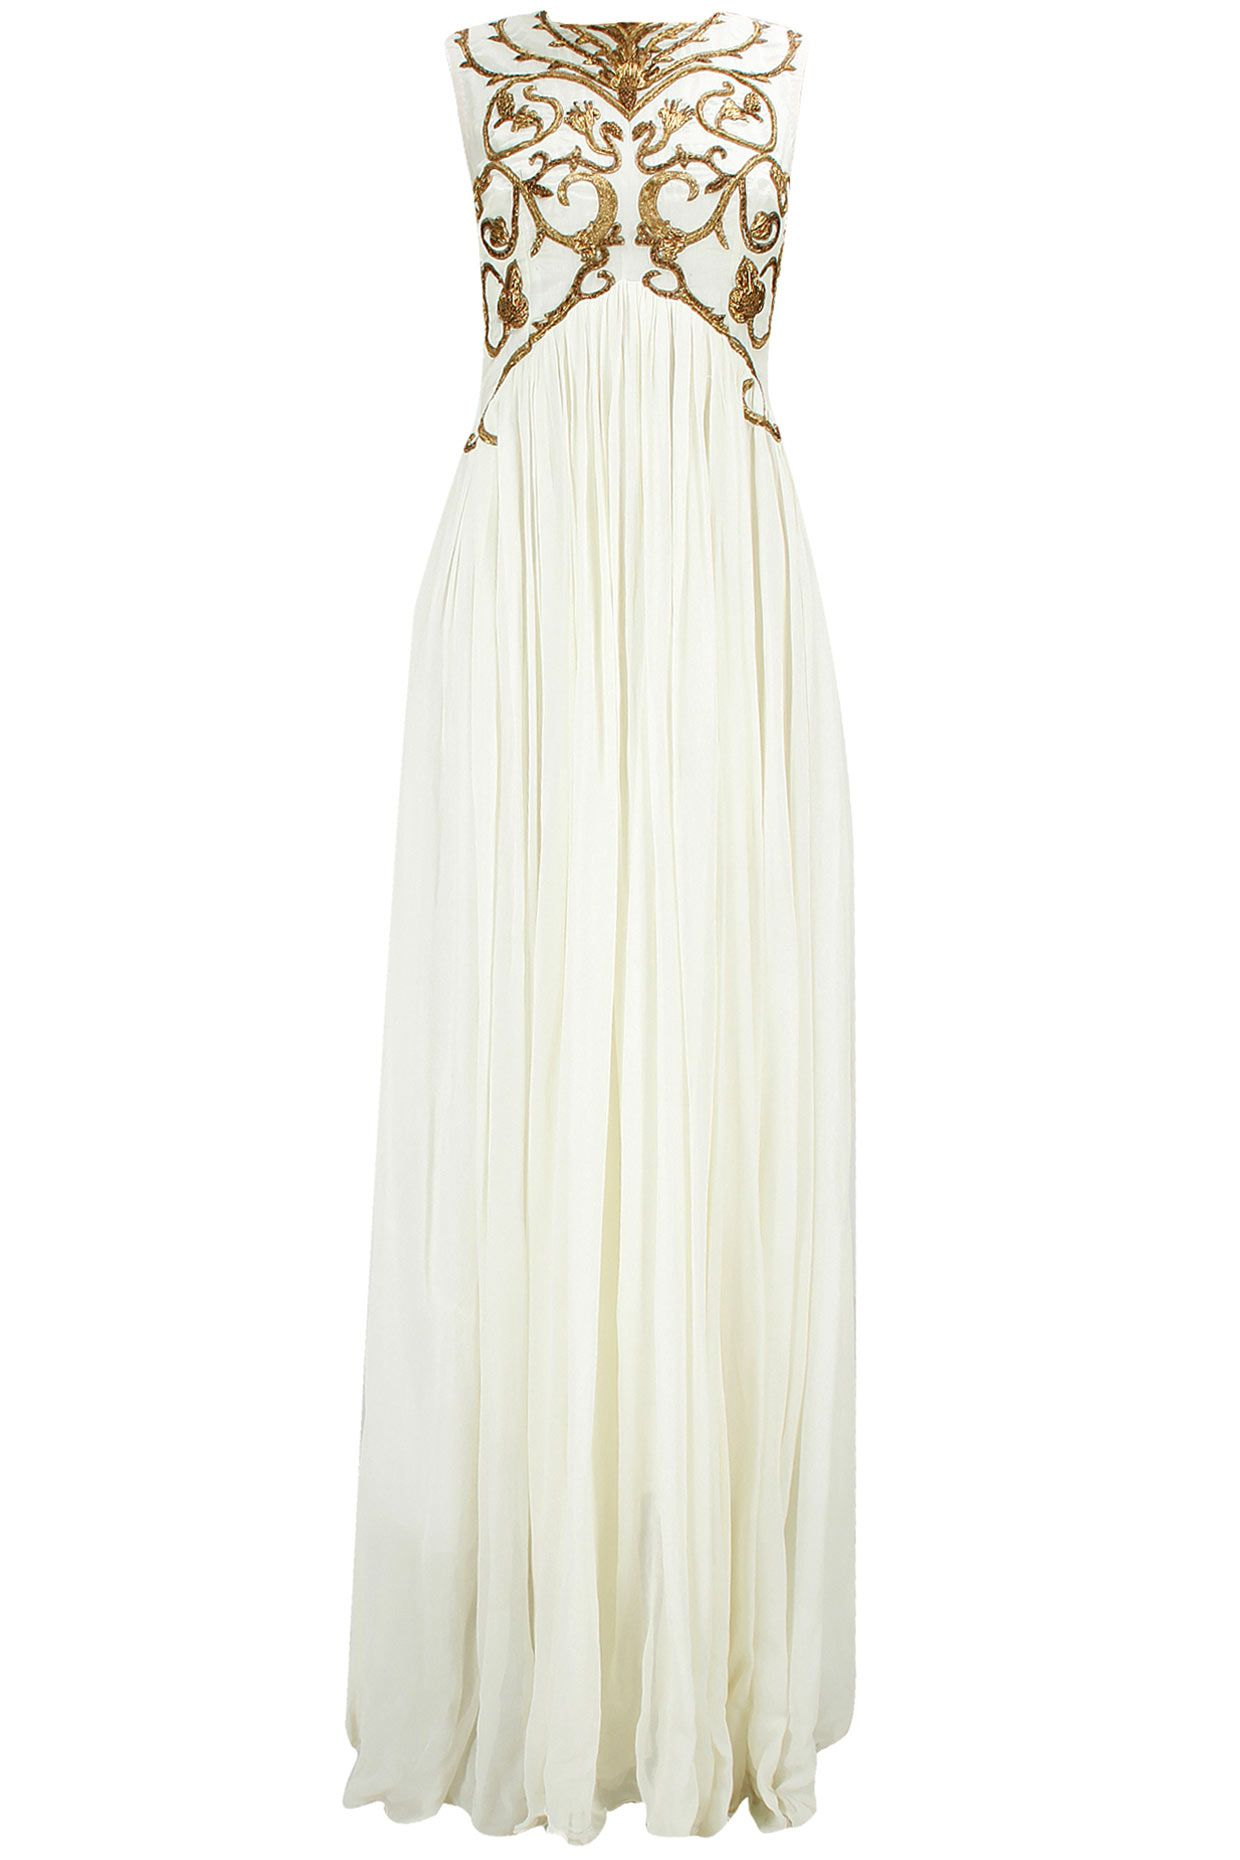 Off-white embroidered pleated gown available only at Pernia\'s Pop-Up ...